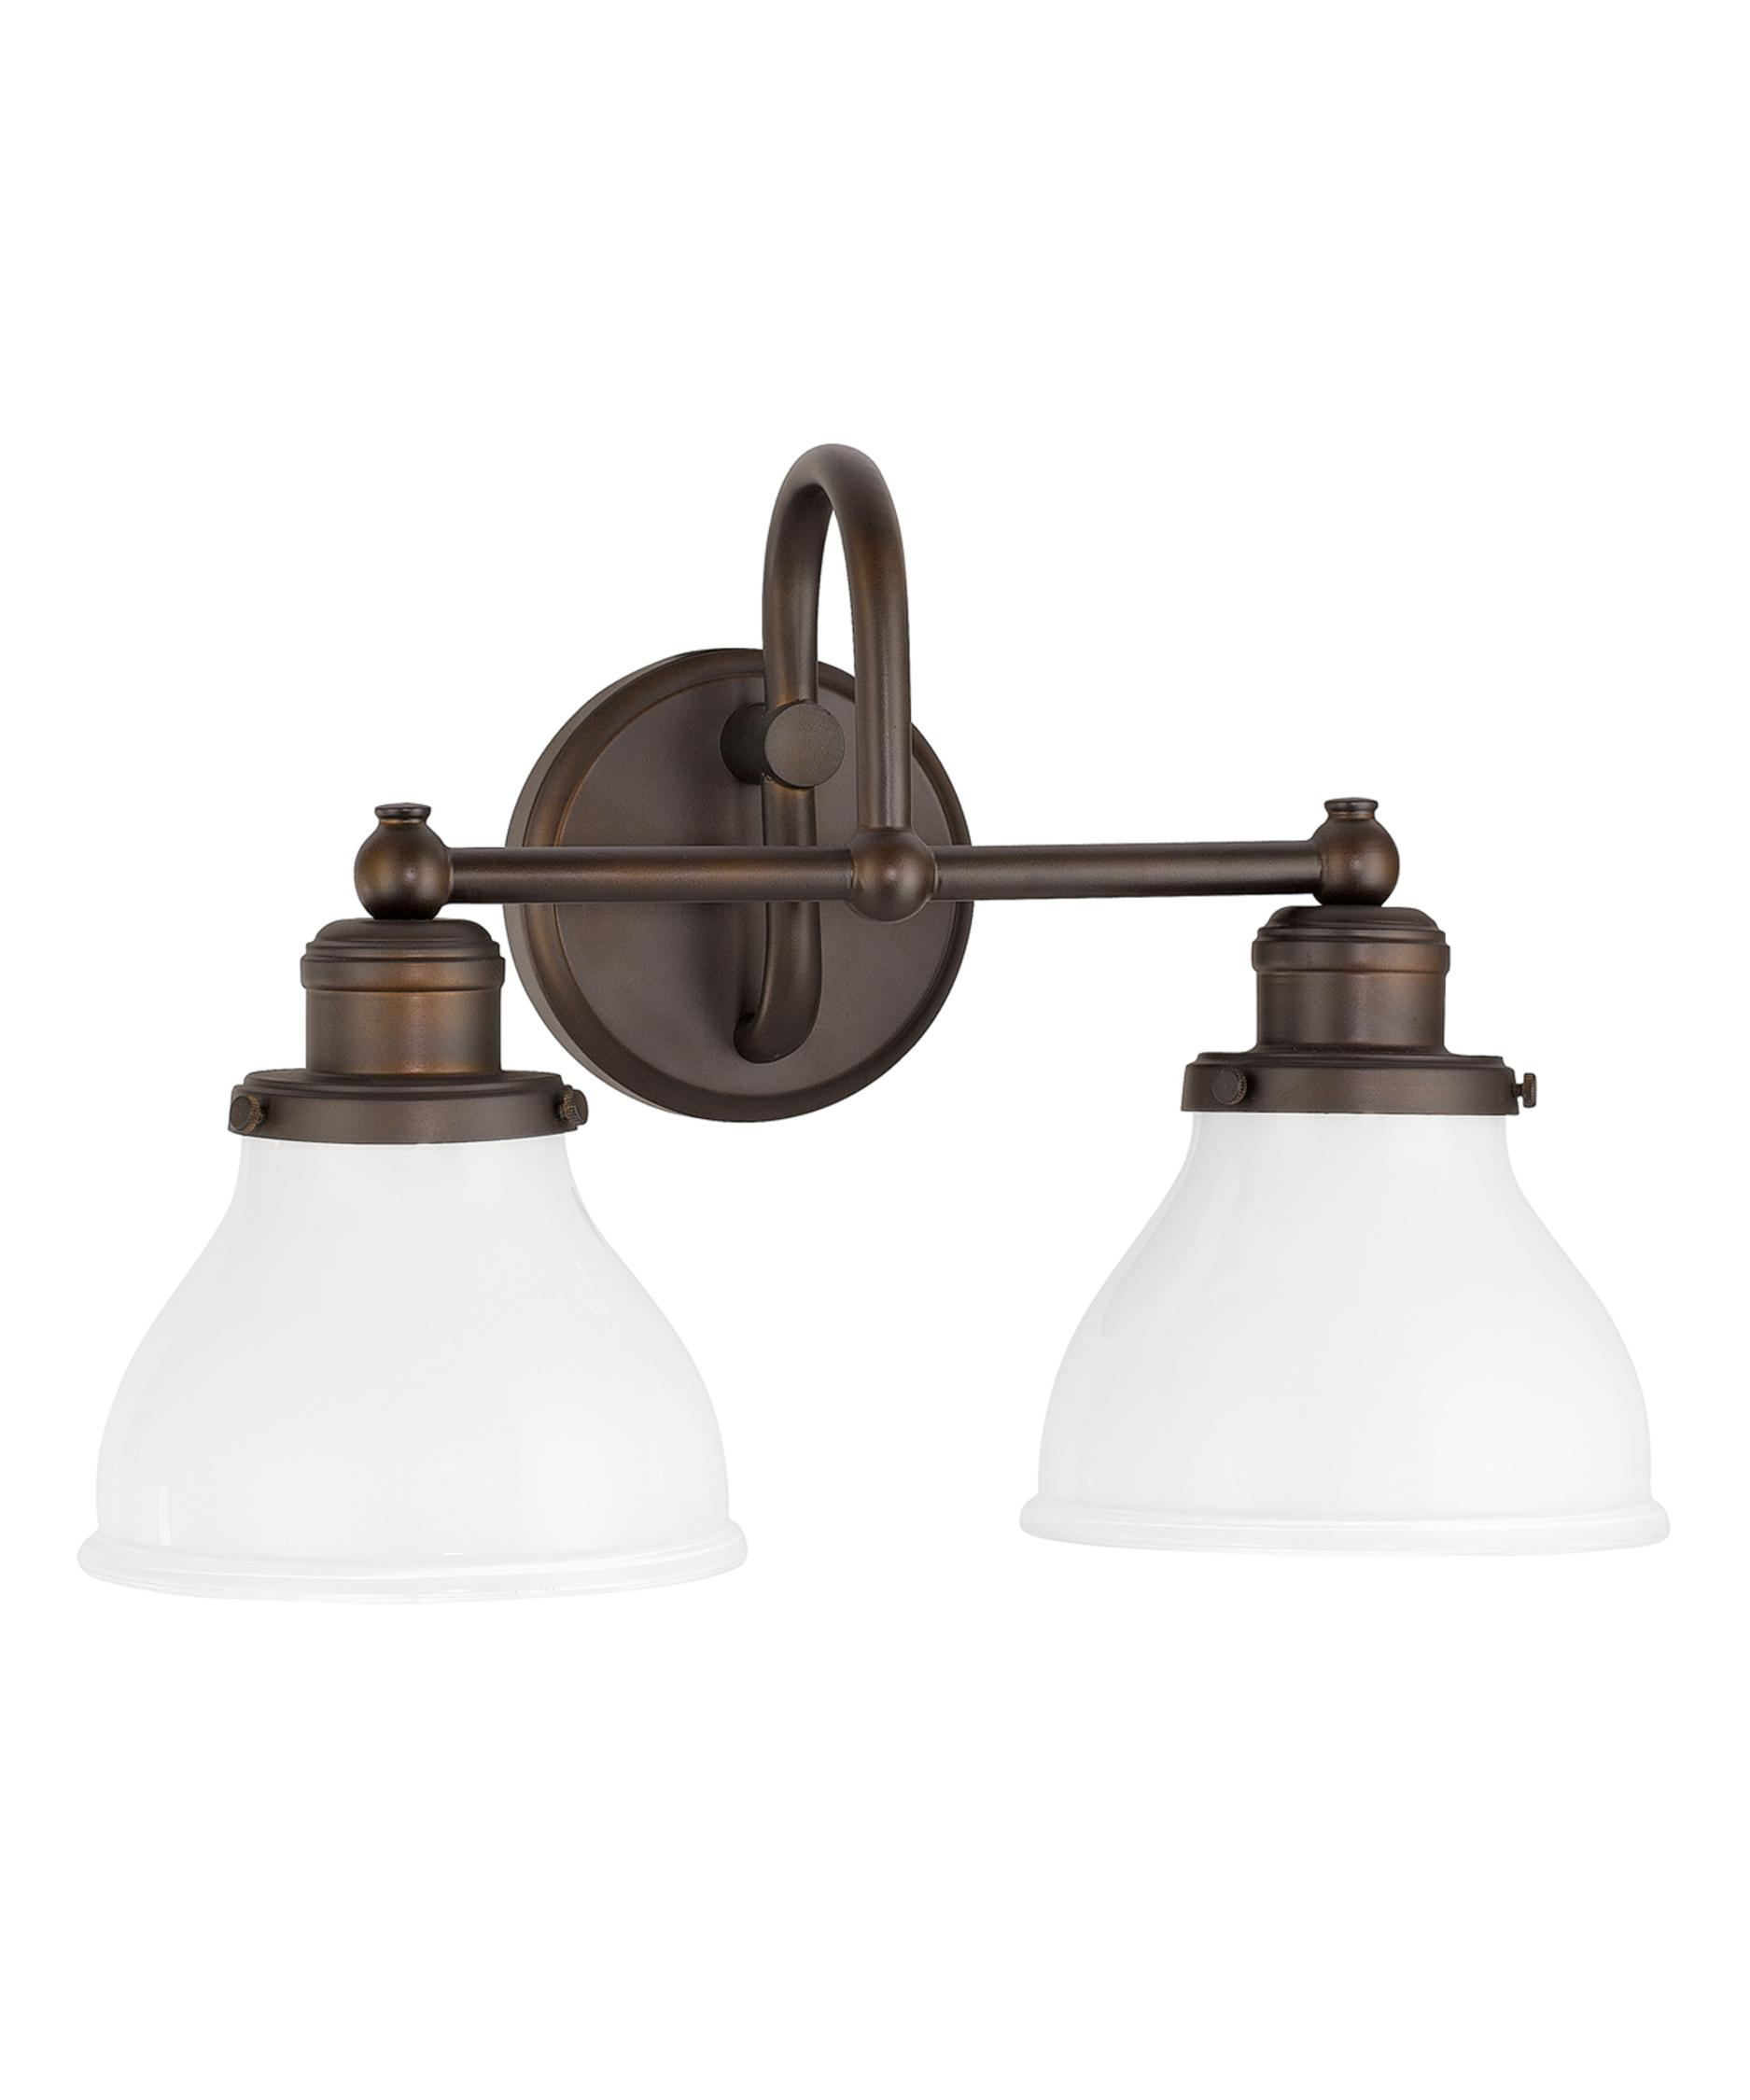 Bathroom Vanity Lights In Bronze capital lighting 8302 baxter 16 inch wide bath vanity light